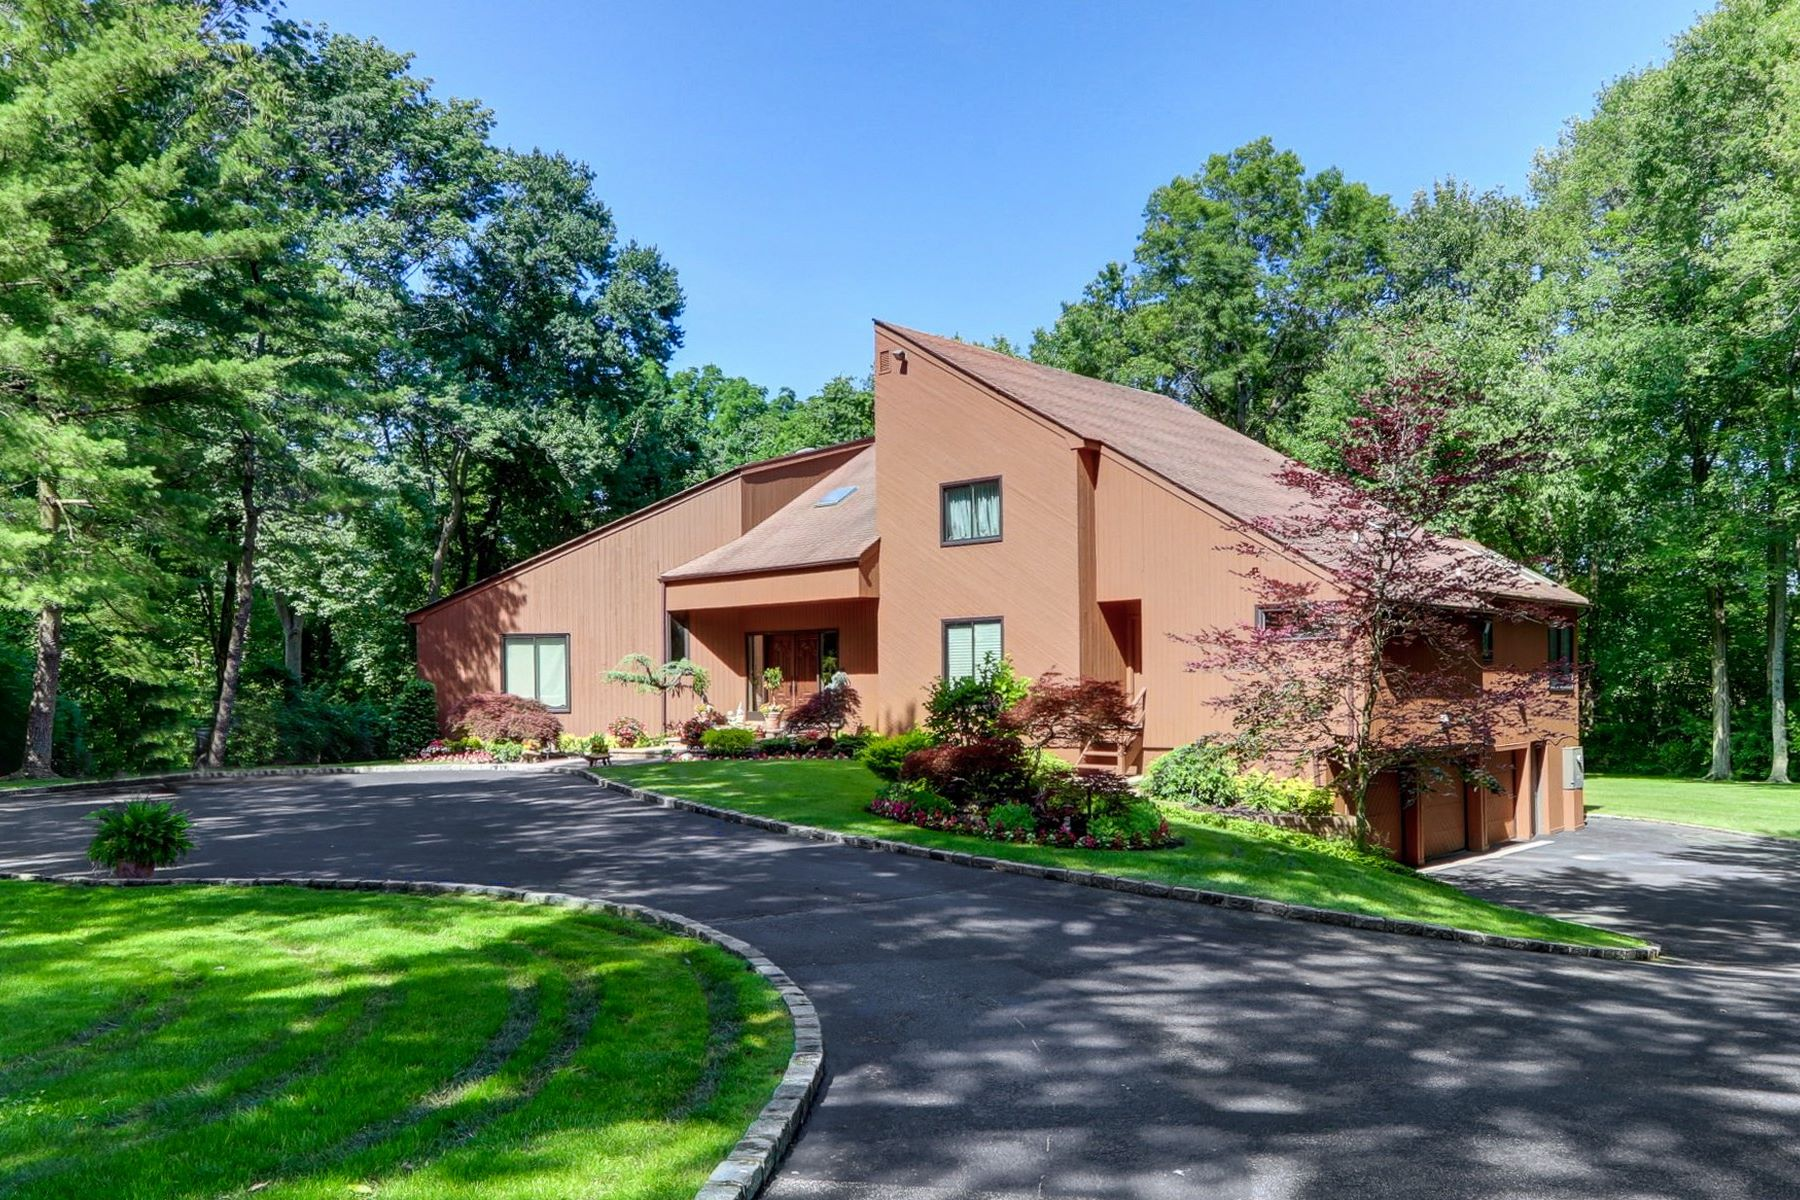 Single Family Homes for Active at Old Brookville 14 Woodfield Ln Old Brookville, New York 11545 United States